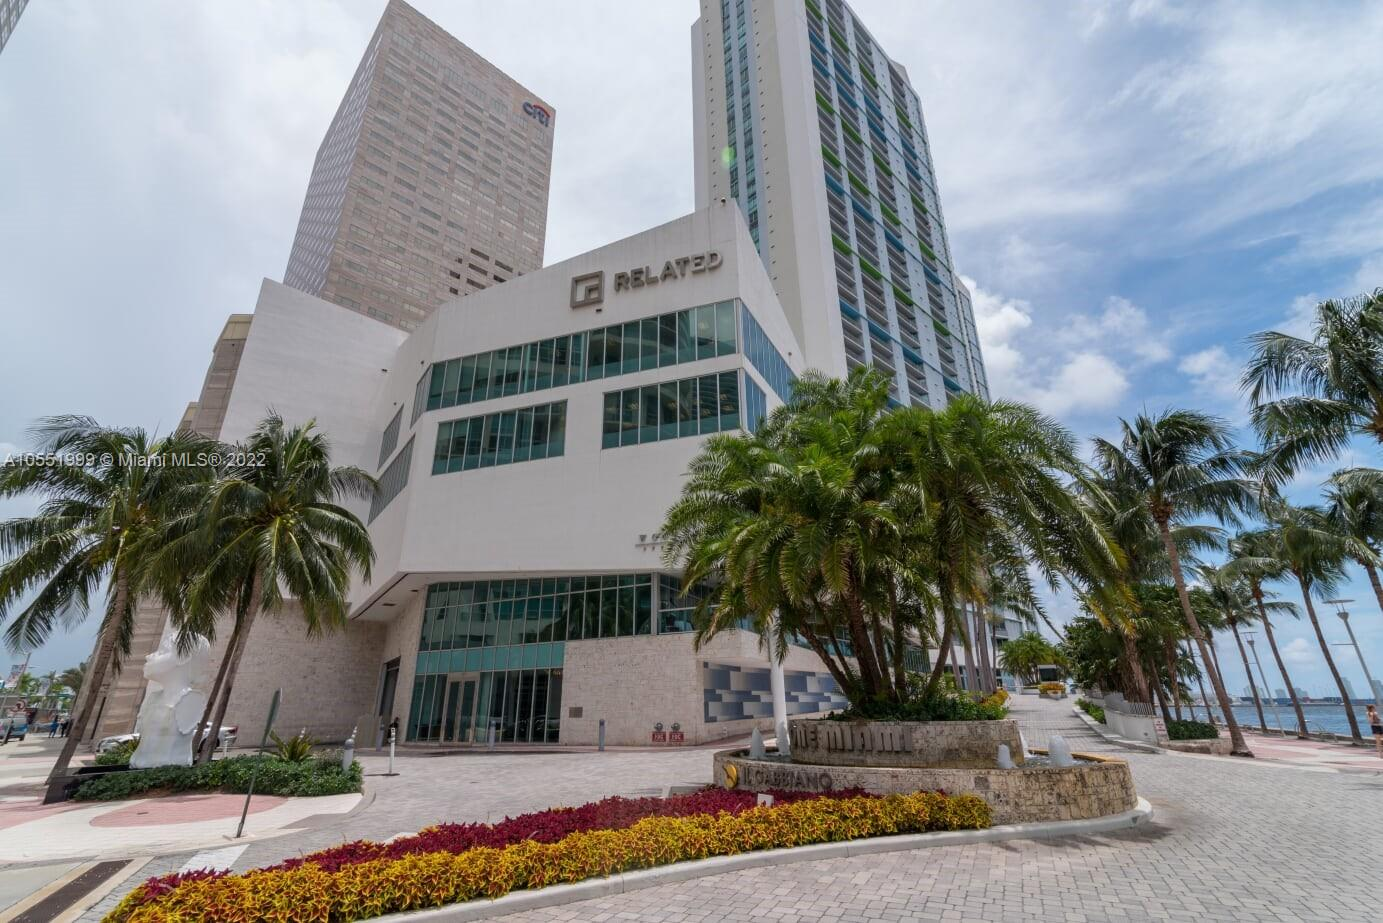 Enjoy a Biscayne Boulevard and Downtown Miami views from this apartment unit, this 2 bedrooms and 2 full bathrooms has a full services amenities, including 2 heating pools, 24/7 security, exercise rooms, sauna, Jacuzzi, 24 hour valet parking and much more!!! Located in one of the most desired waterfront location of Miami, close to the best restaurants, beaches, the landmark Brickell Centre mall  where you can find a lot entertainment with your family and friends!! Don't miss opportunity!!